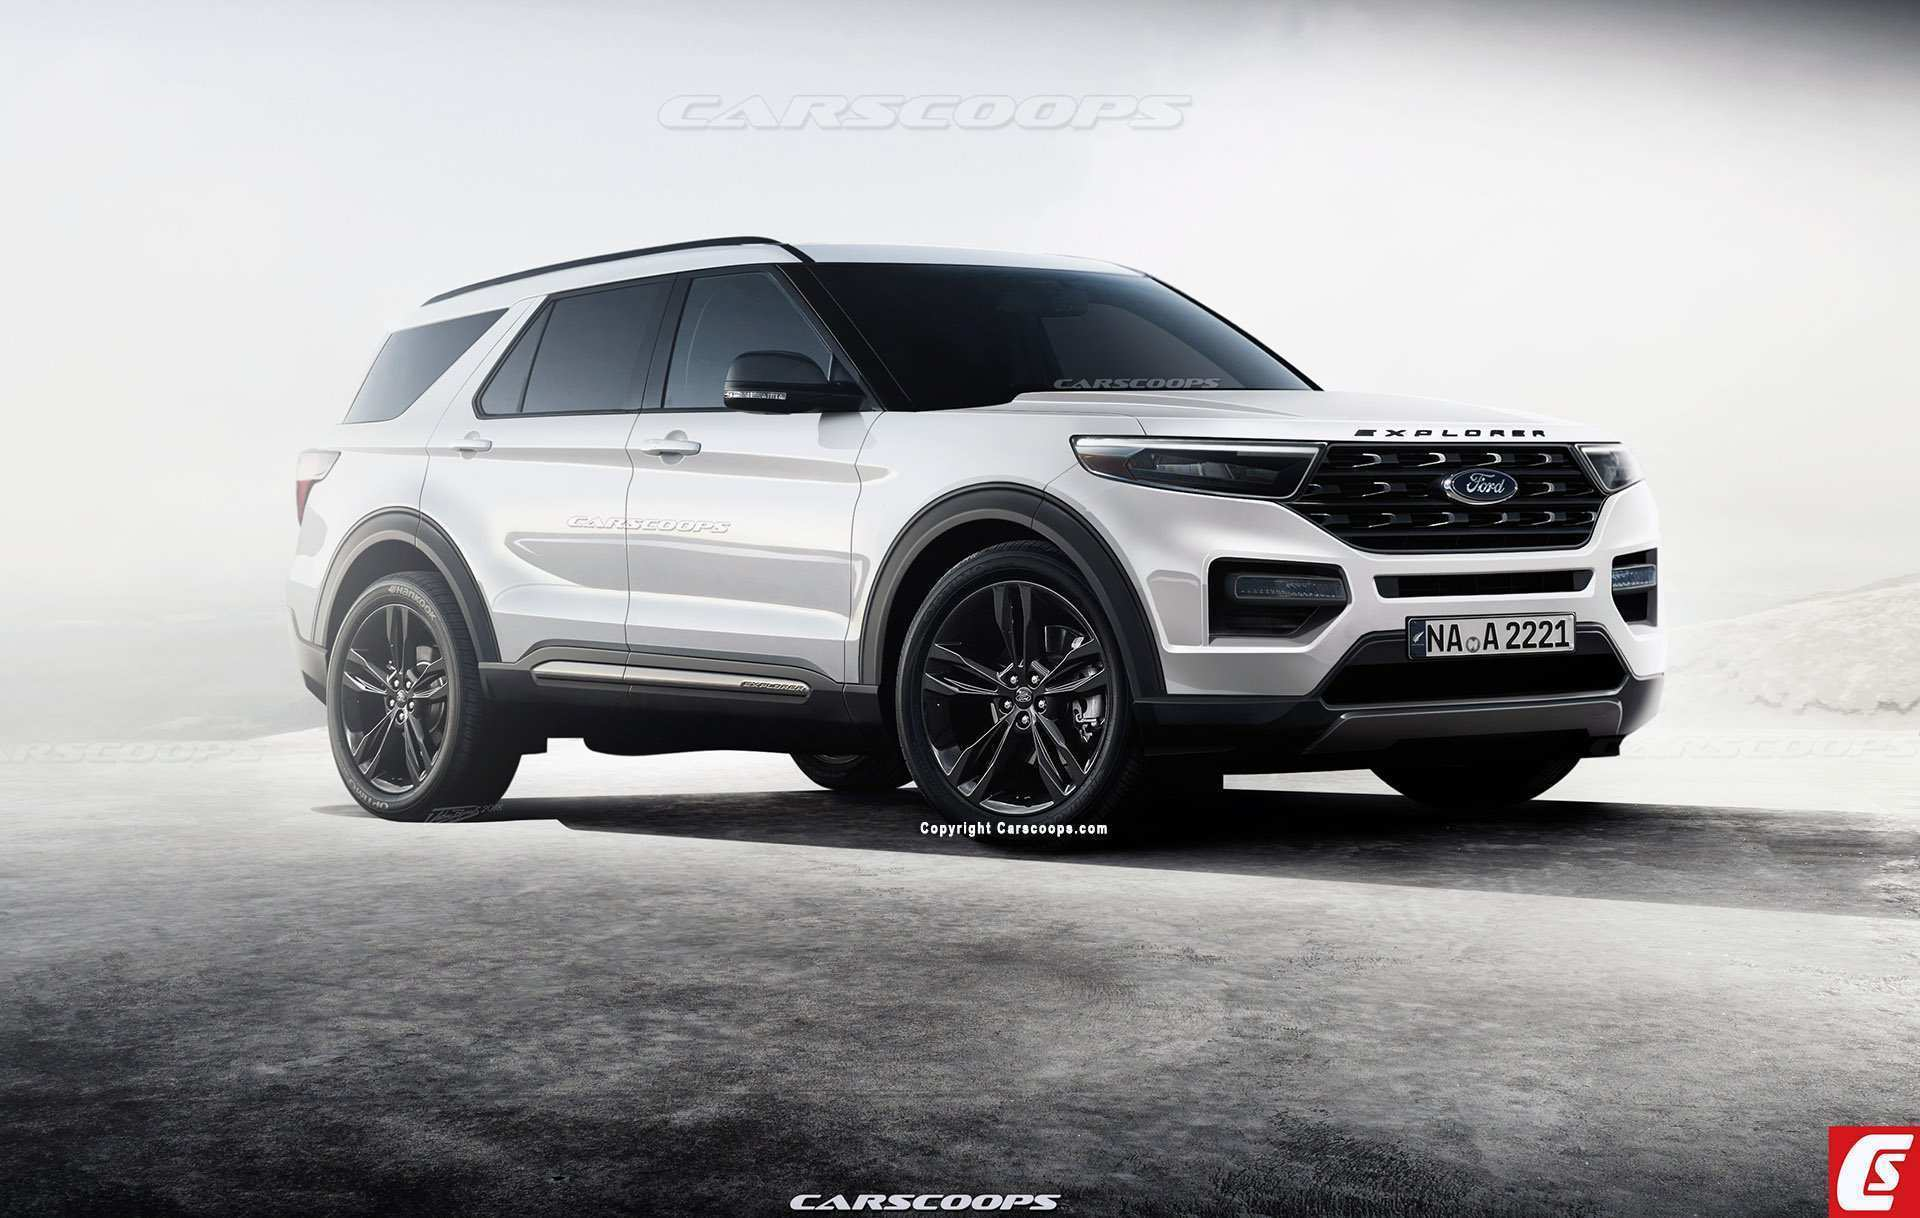 51 Concept of 2020 Ford Explorer Design New Concept by 2020 Ford Explorer Design